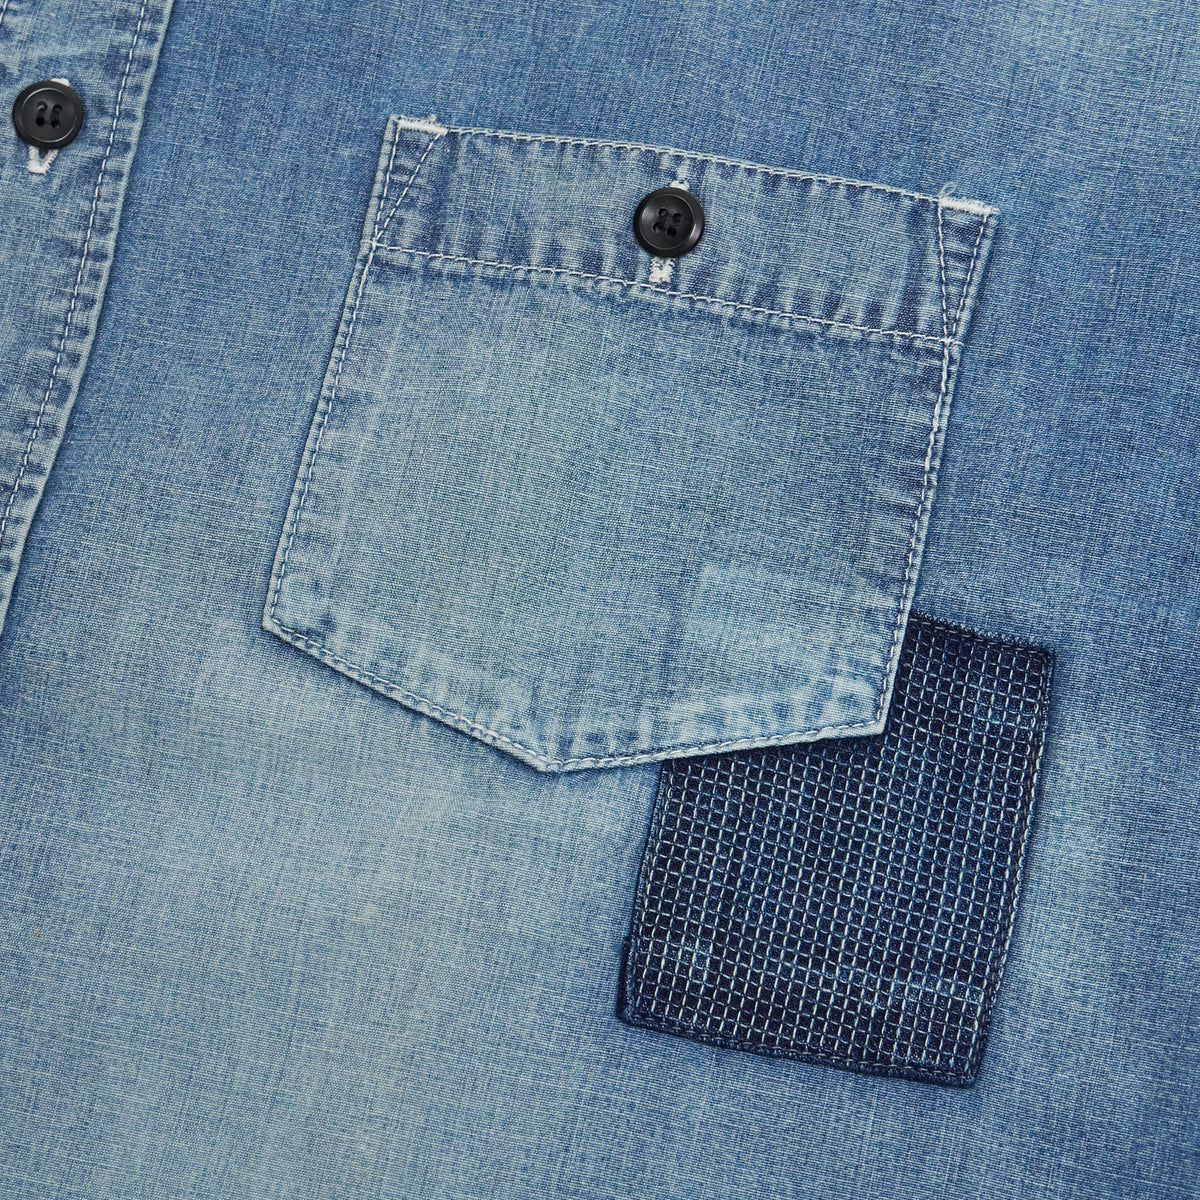 FDMTL Denim Patchwork Jeans Shirt Sashiko Embroidered